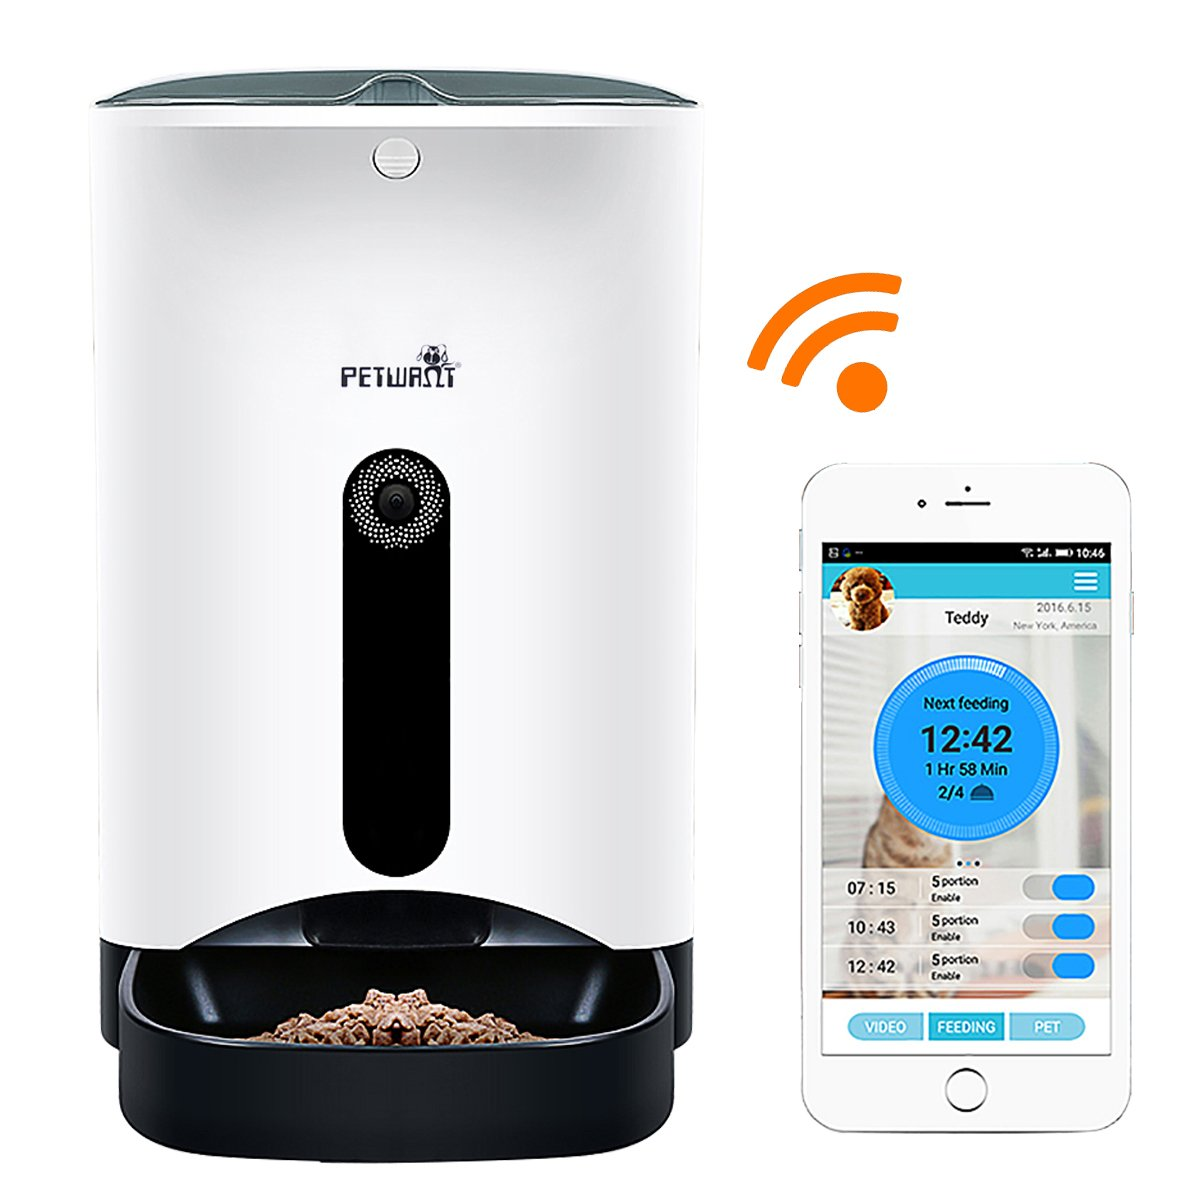 GemPet Petwant SmartFeeder Automatic Pet Feeder, Pet Food Dispenser for Dogs and Cats, Controlled by IPhone, Android or Other Smart Devices